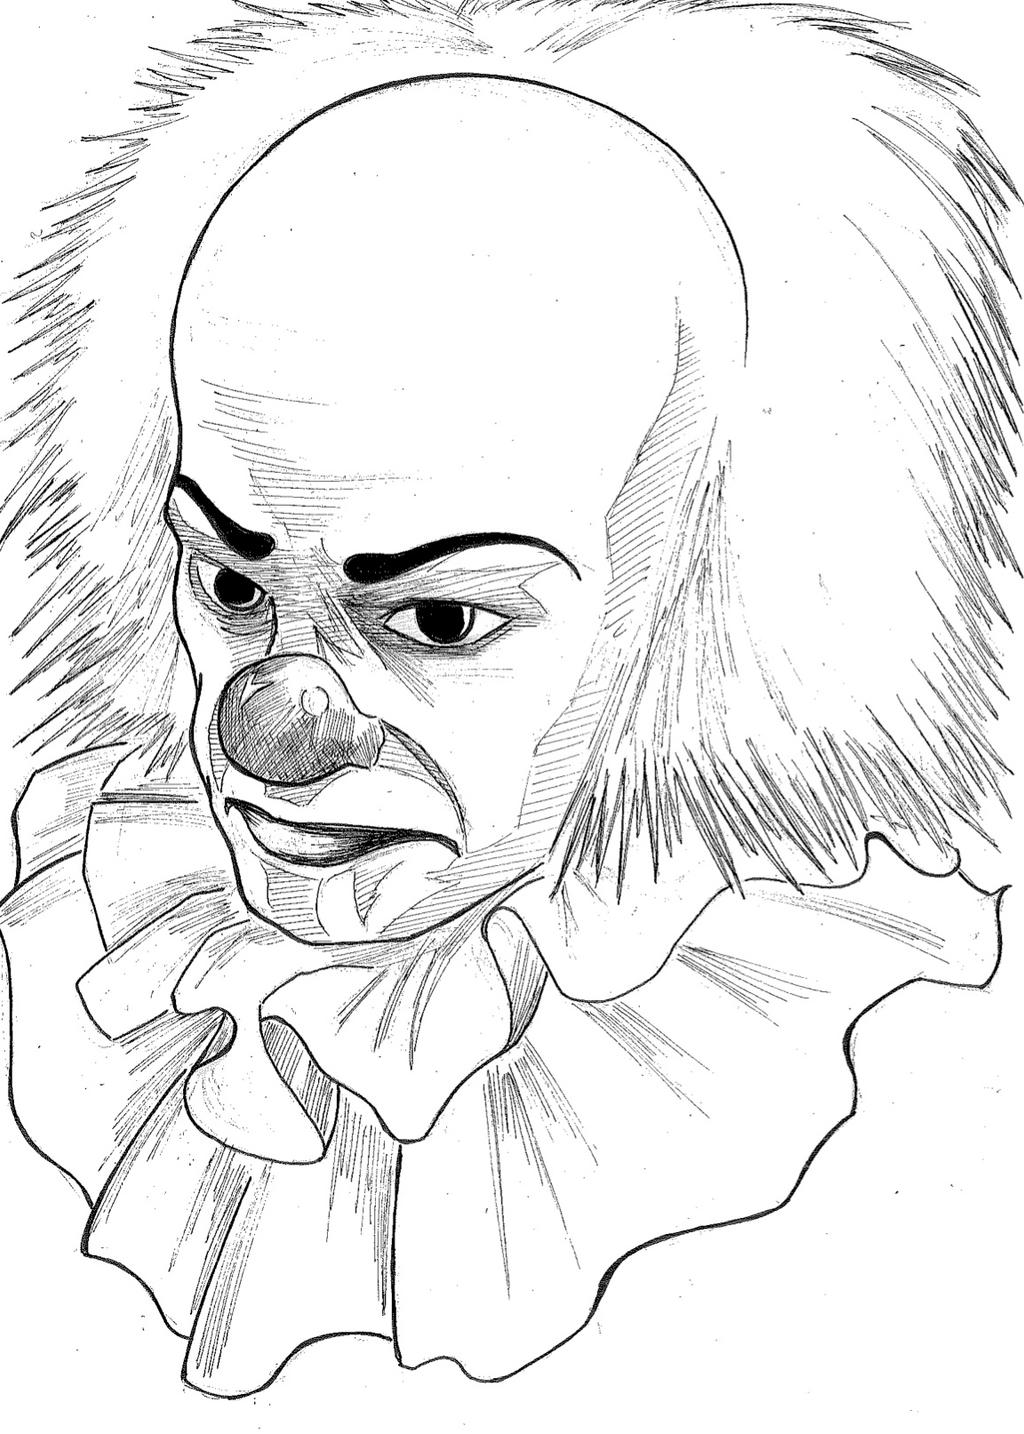 Pennywise by peterfrancisfahy on DeviantArt